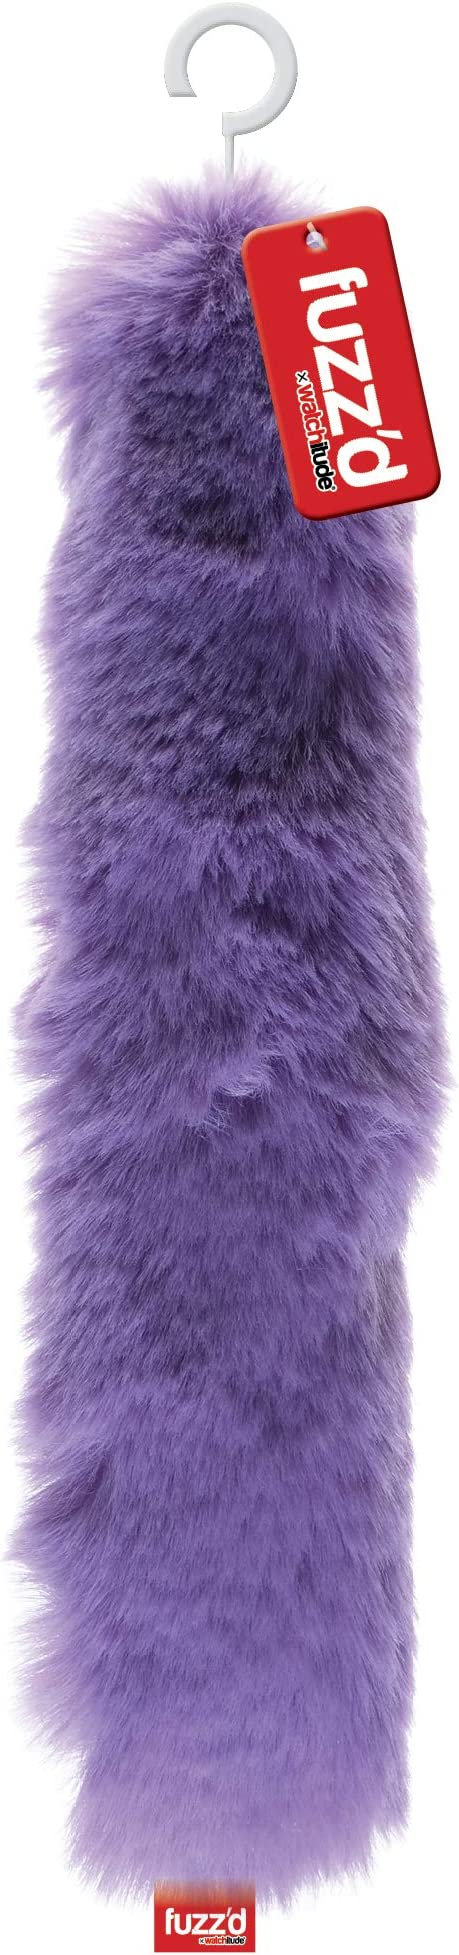 watchitude Fuzzd Slap Bracelet Scrunchy Fun and Colorful Soft Rings Fluffy Match Your Outfit, Carnival Stripes Furry Puff Balls Fuzzy Faux Fur Fun Bright Colors